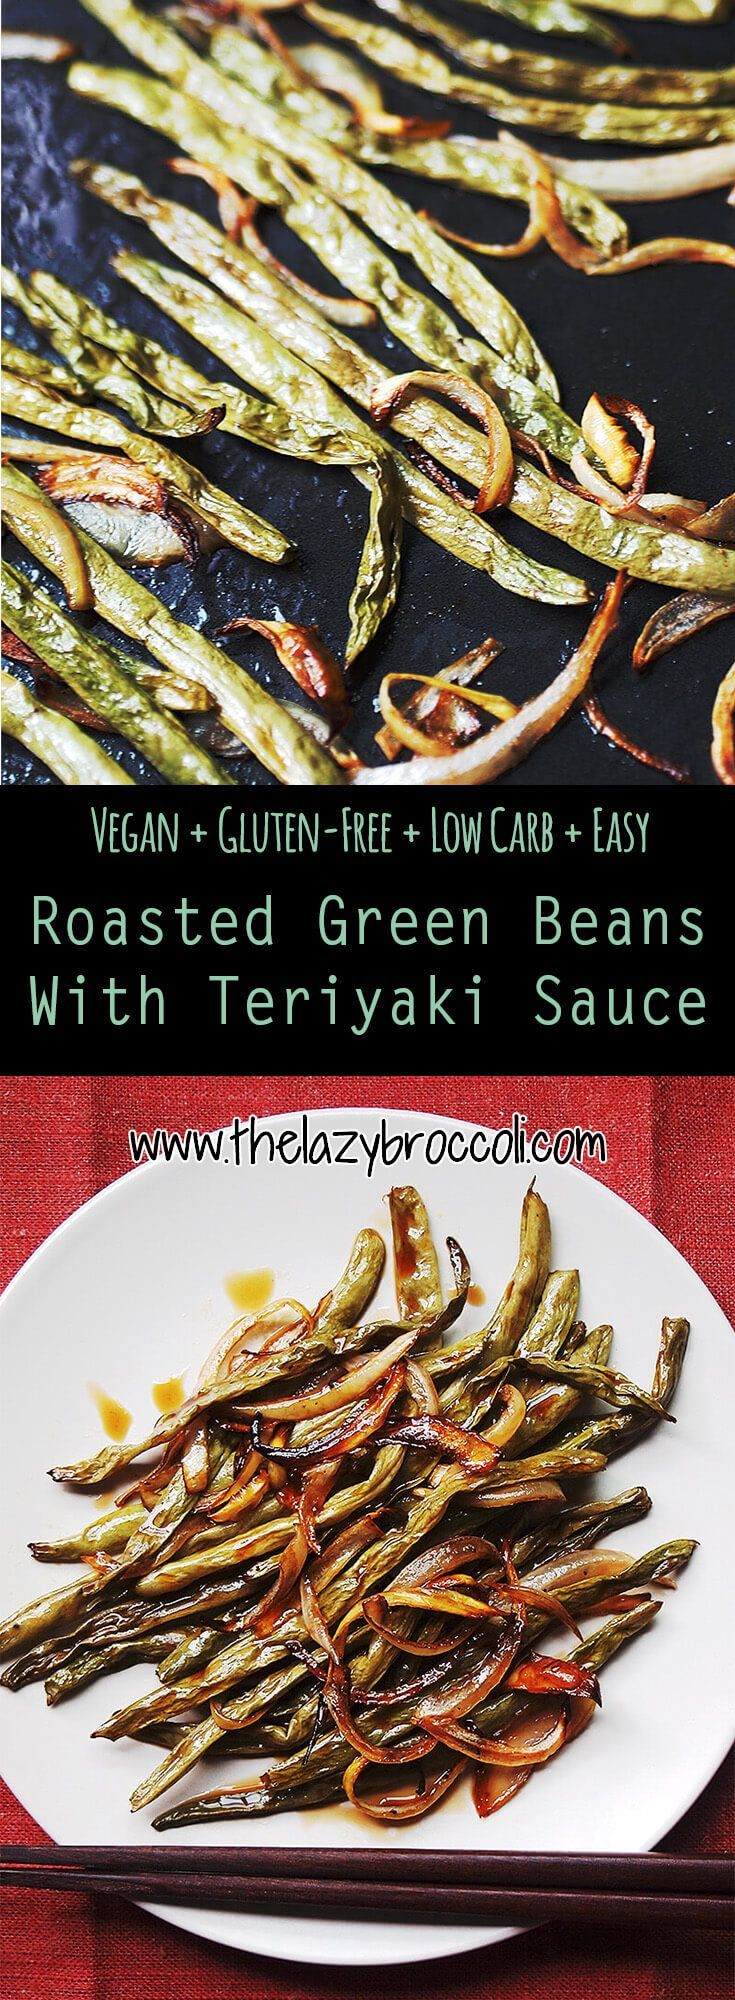 This vegan, gluten free and low carb roasted green beans with teriyaki sauce is a super easy and delicious asian spin on a classic thanksgiving dish!